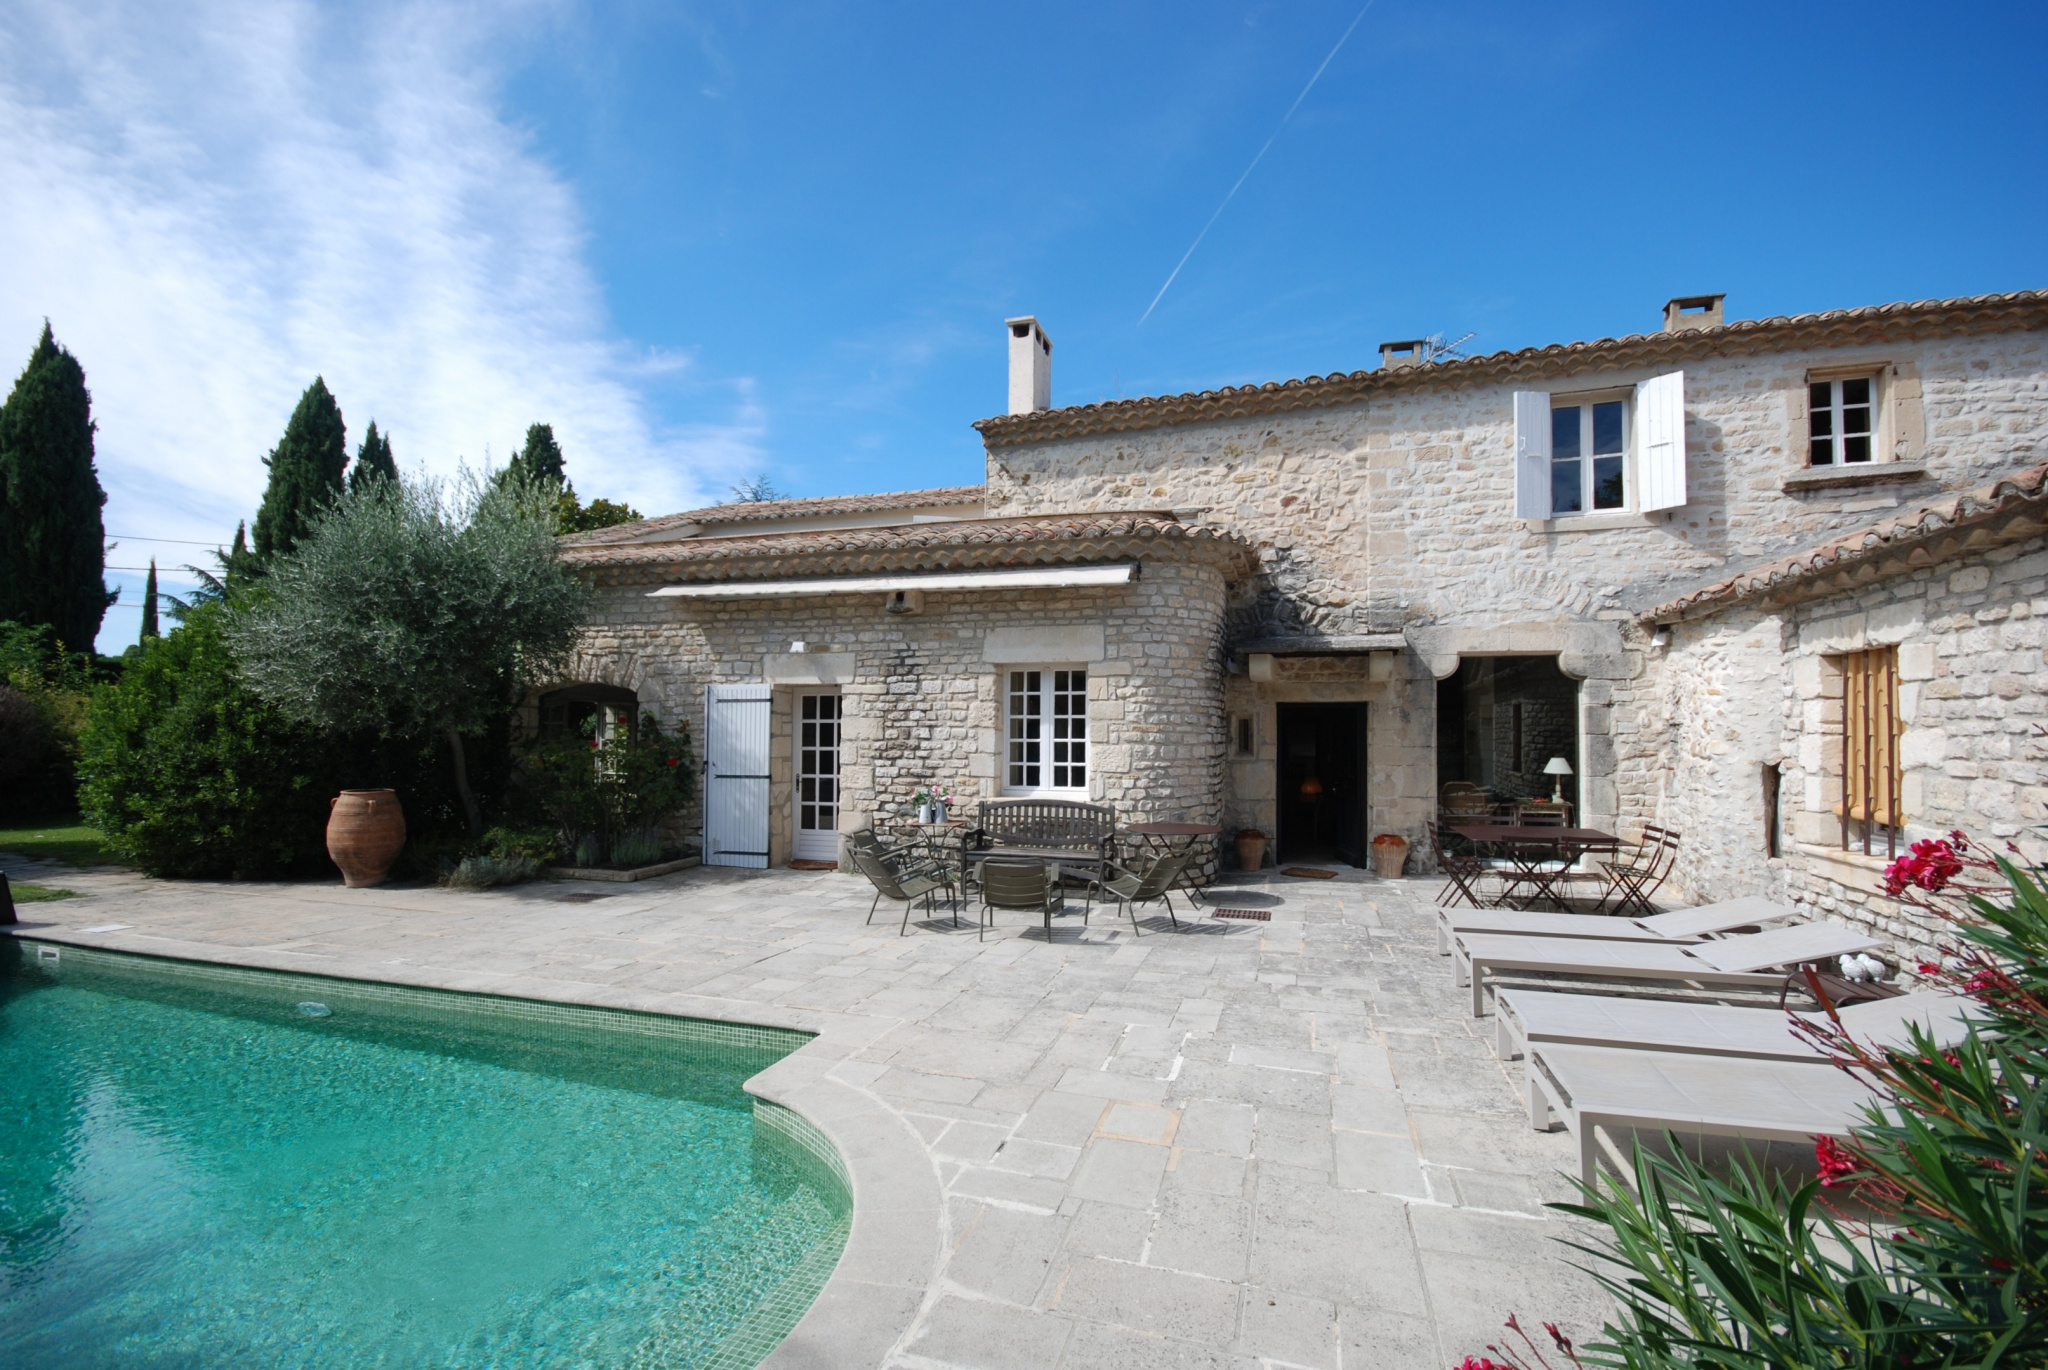 SUPERB PROPERTY IN STONE NEAR CENTER TOWN OF VAISON-LA-ROMAINE